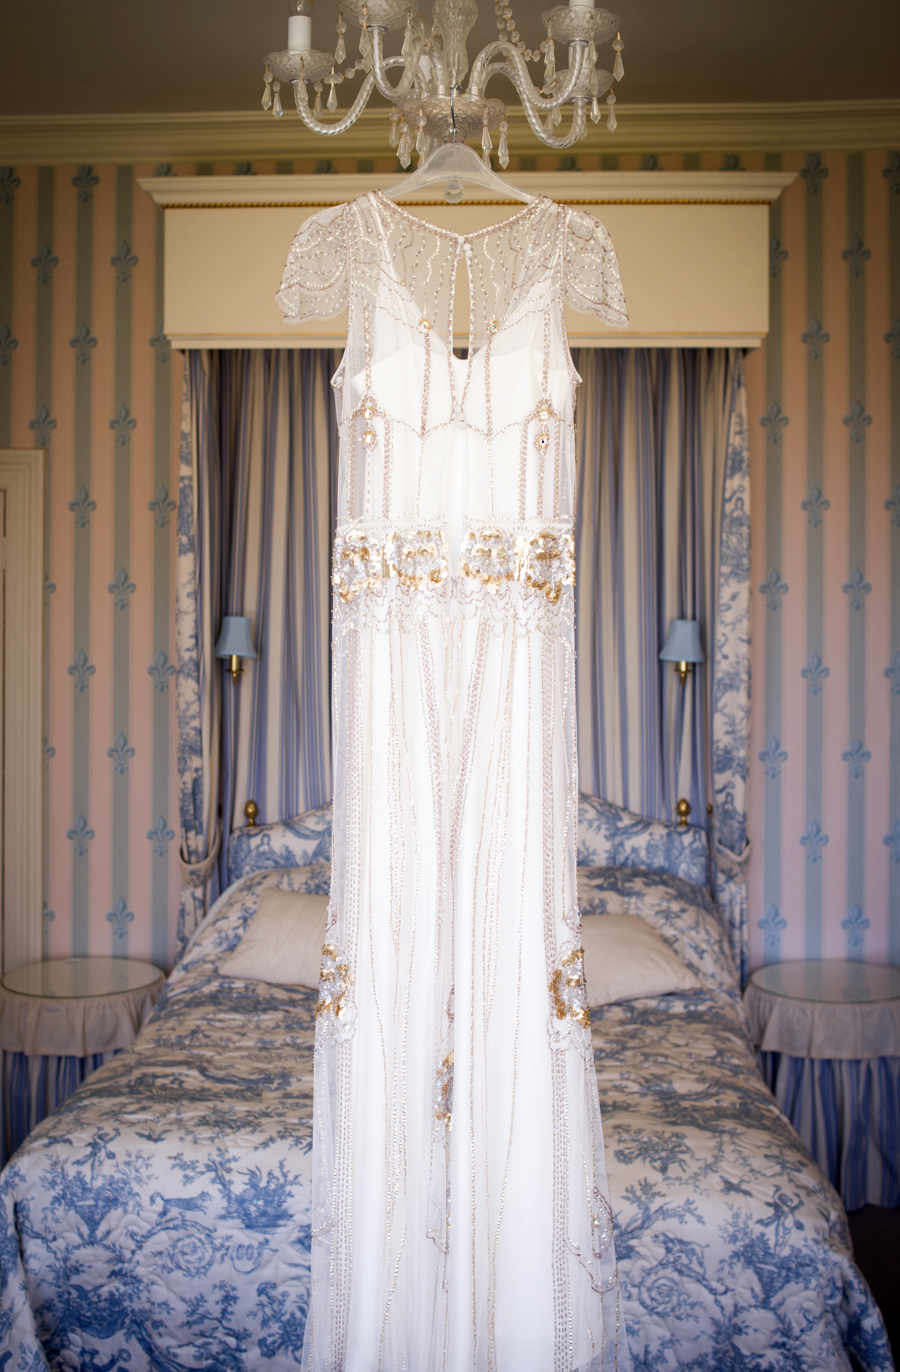 Vintage Wedding Dress: 1920's inspired